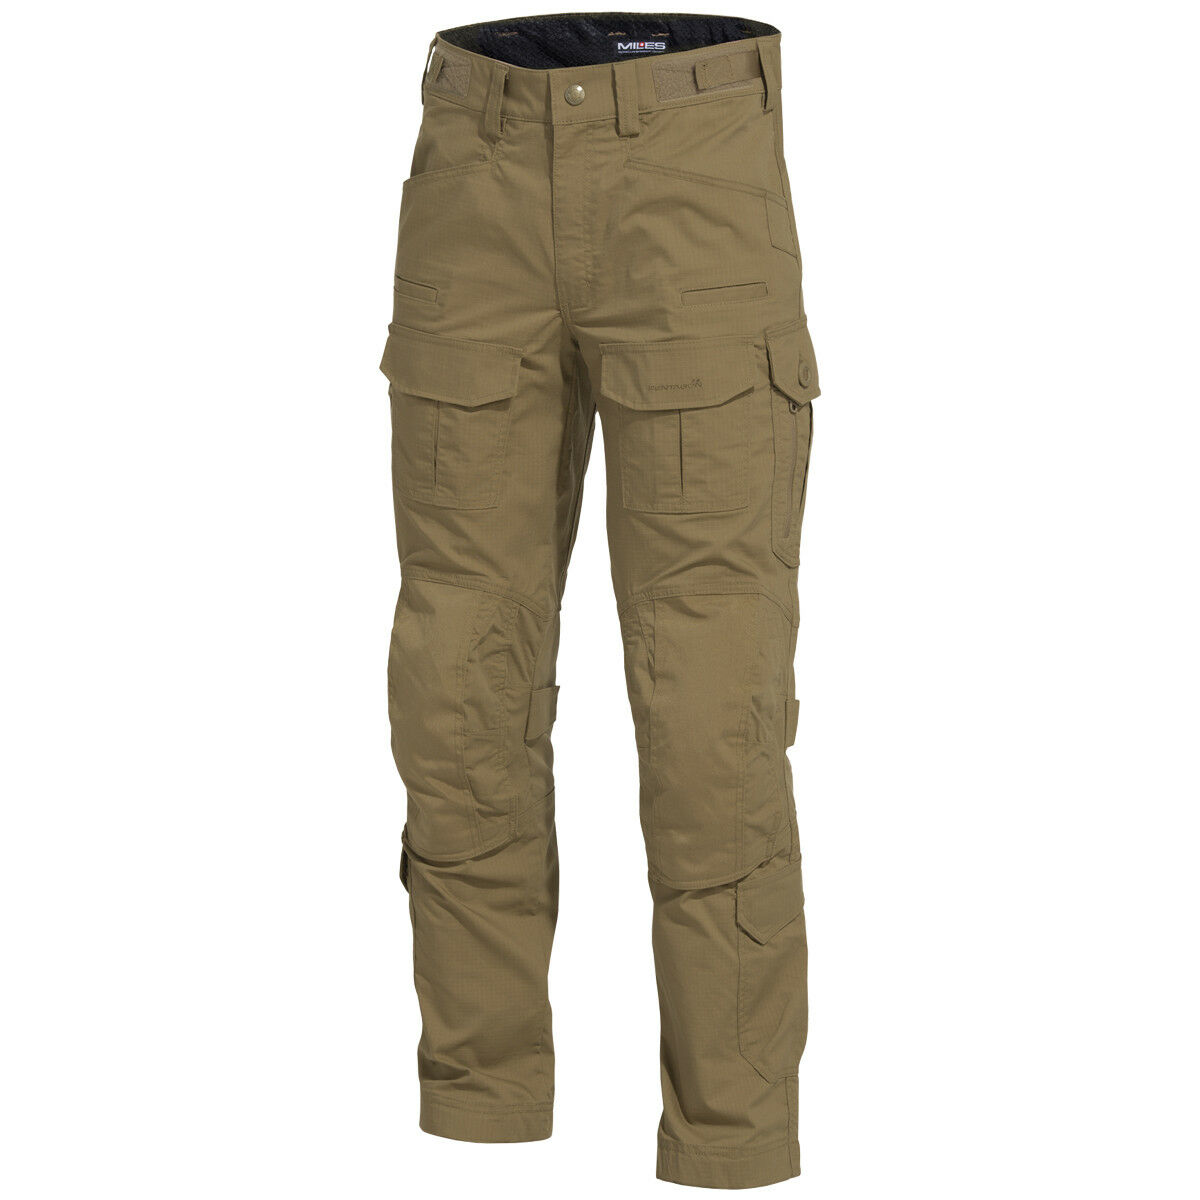 Pentagon Wolf Combat Pants Army Tactical Hunting Airsoft YKK Zippers Coyote